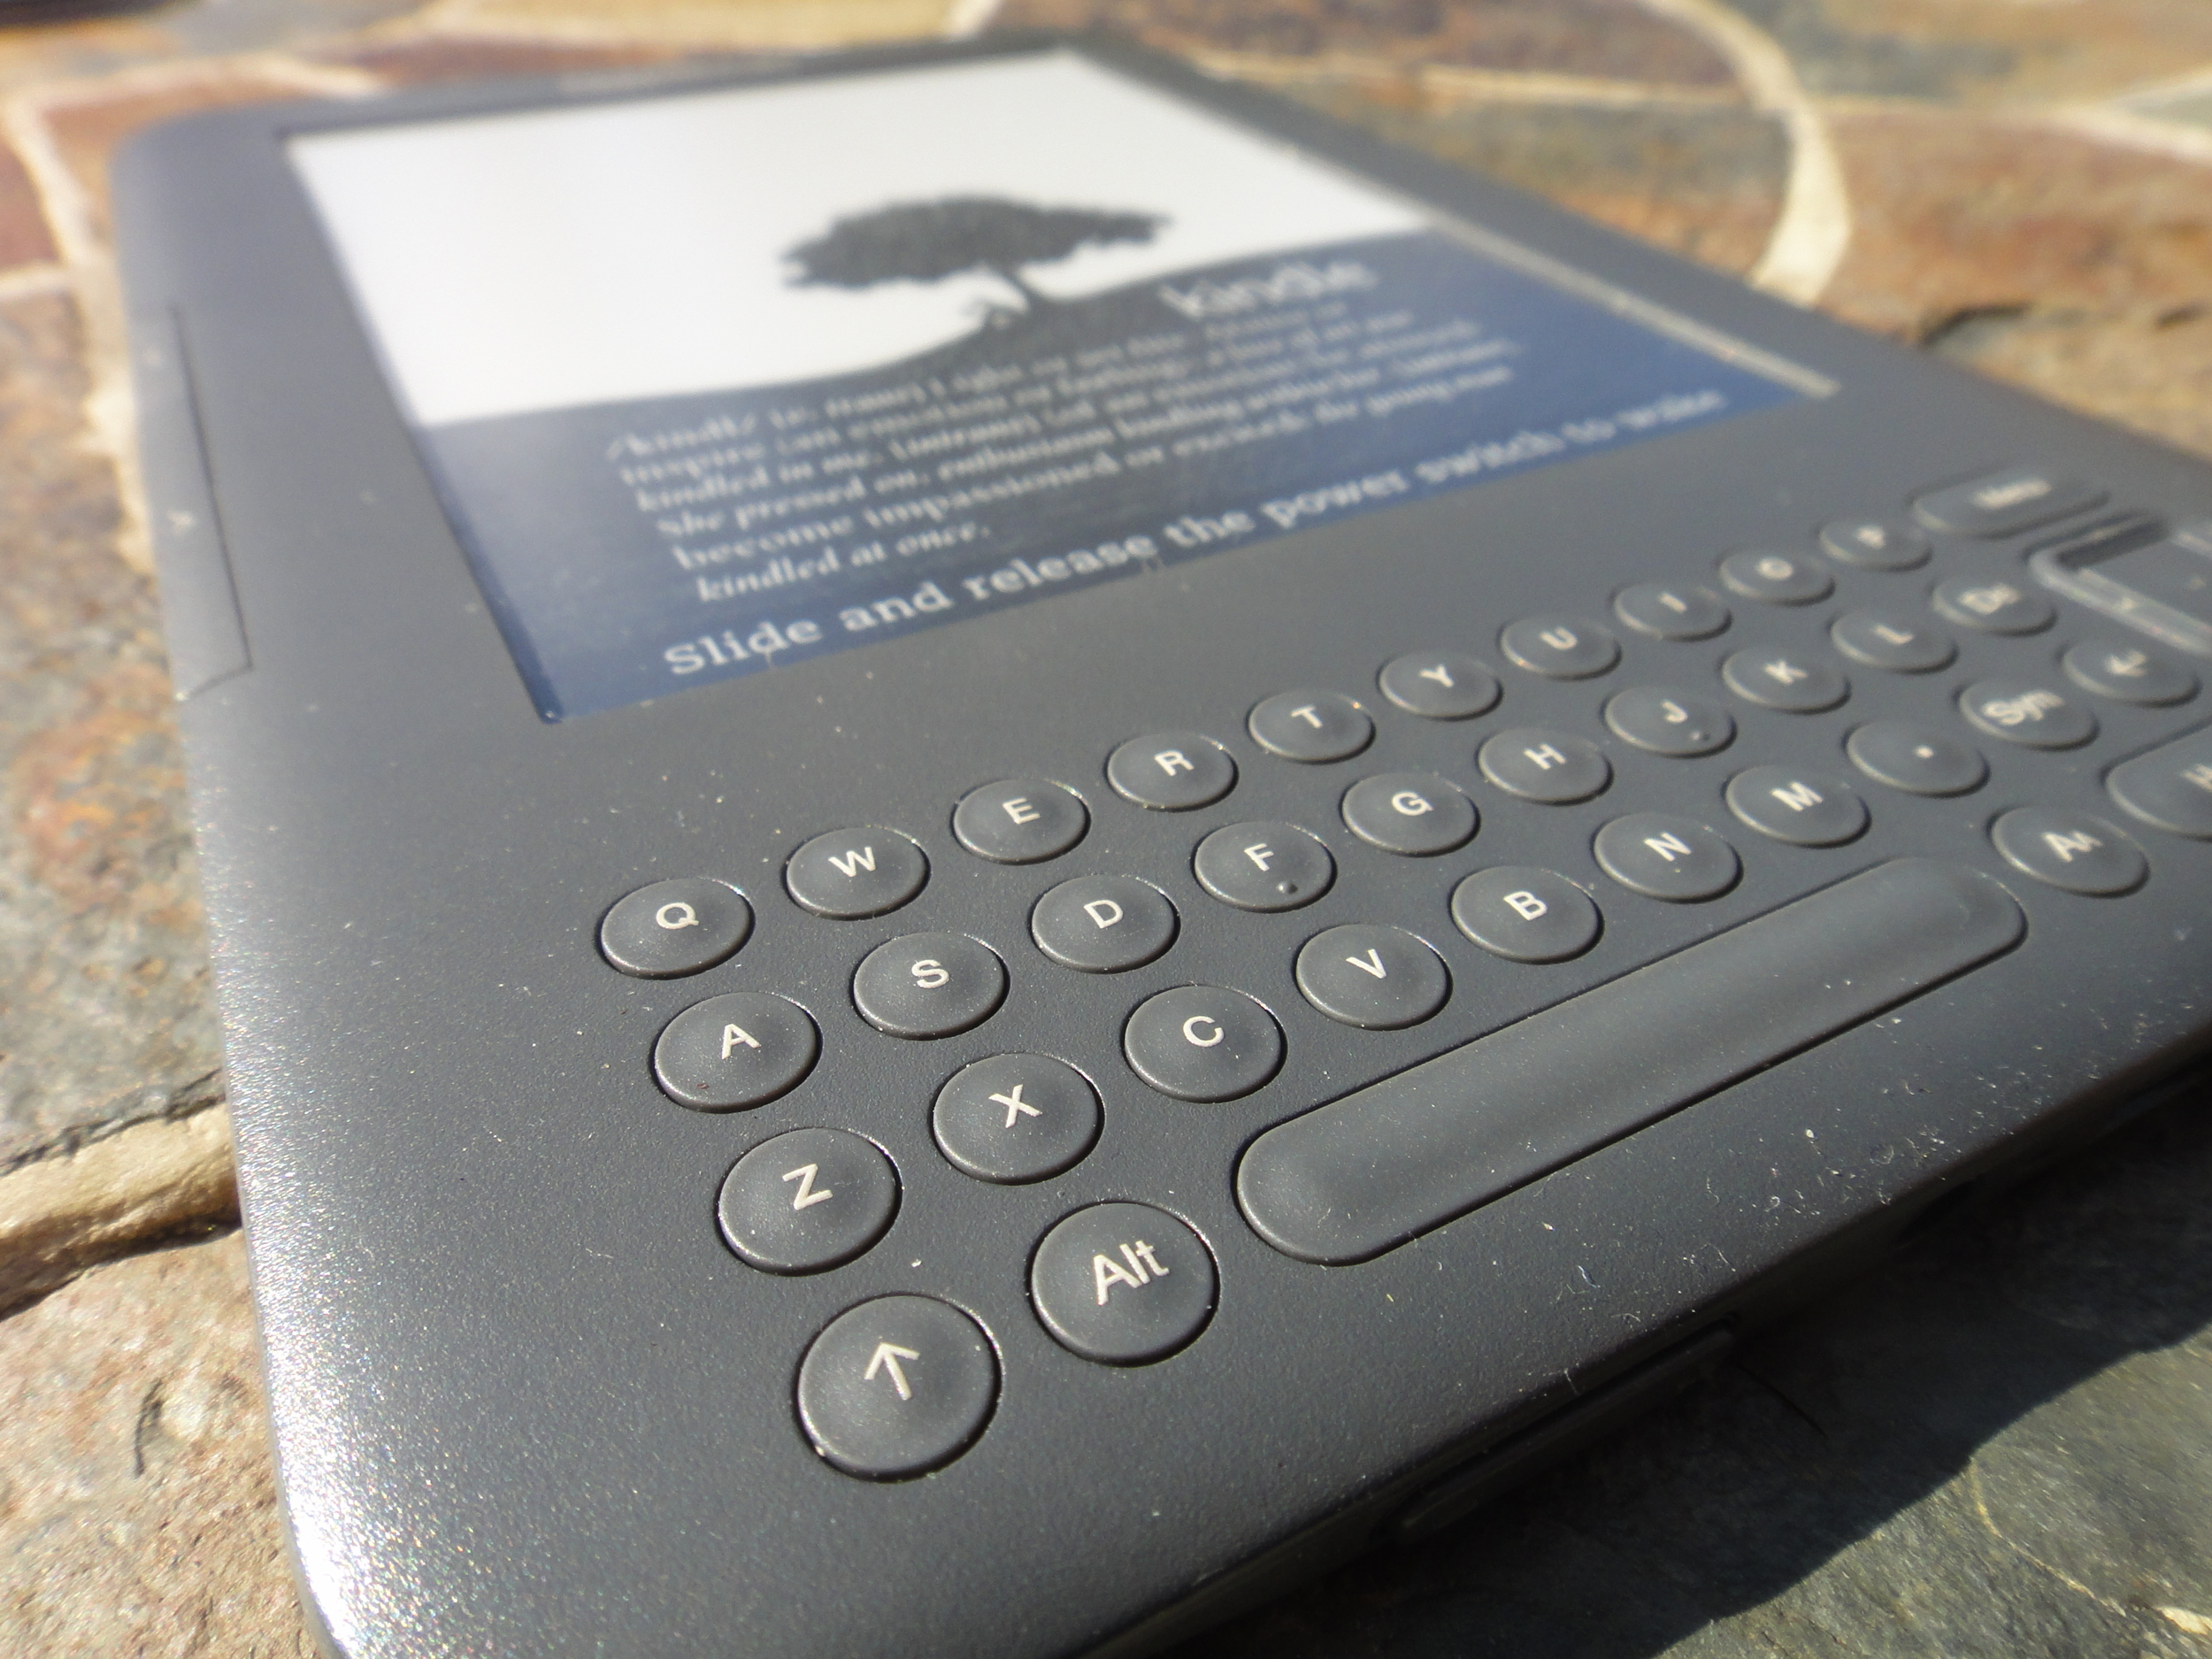 The Kindle Keyboard 3G